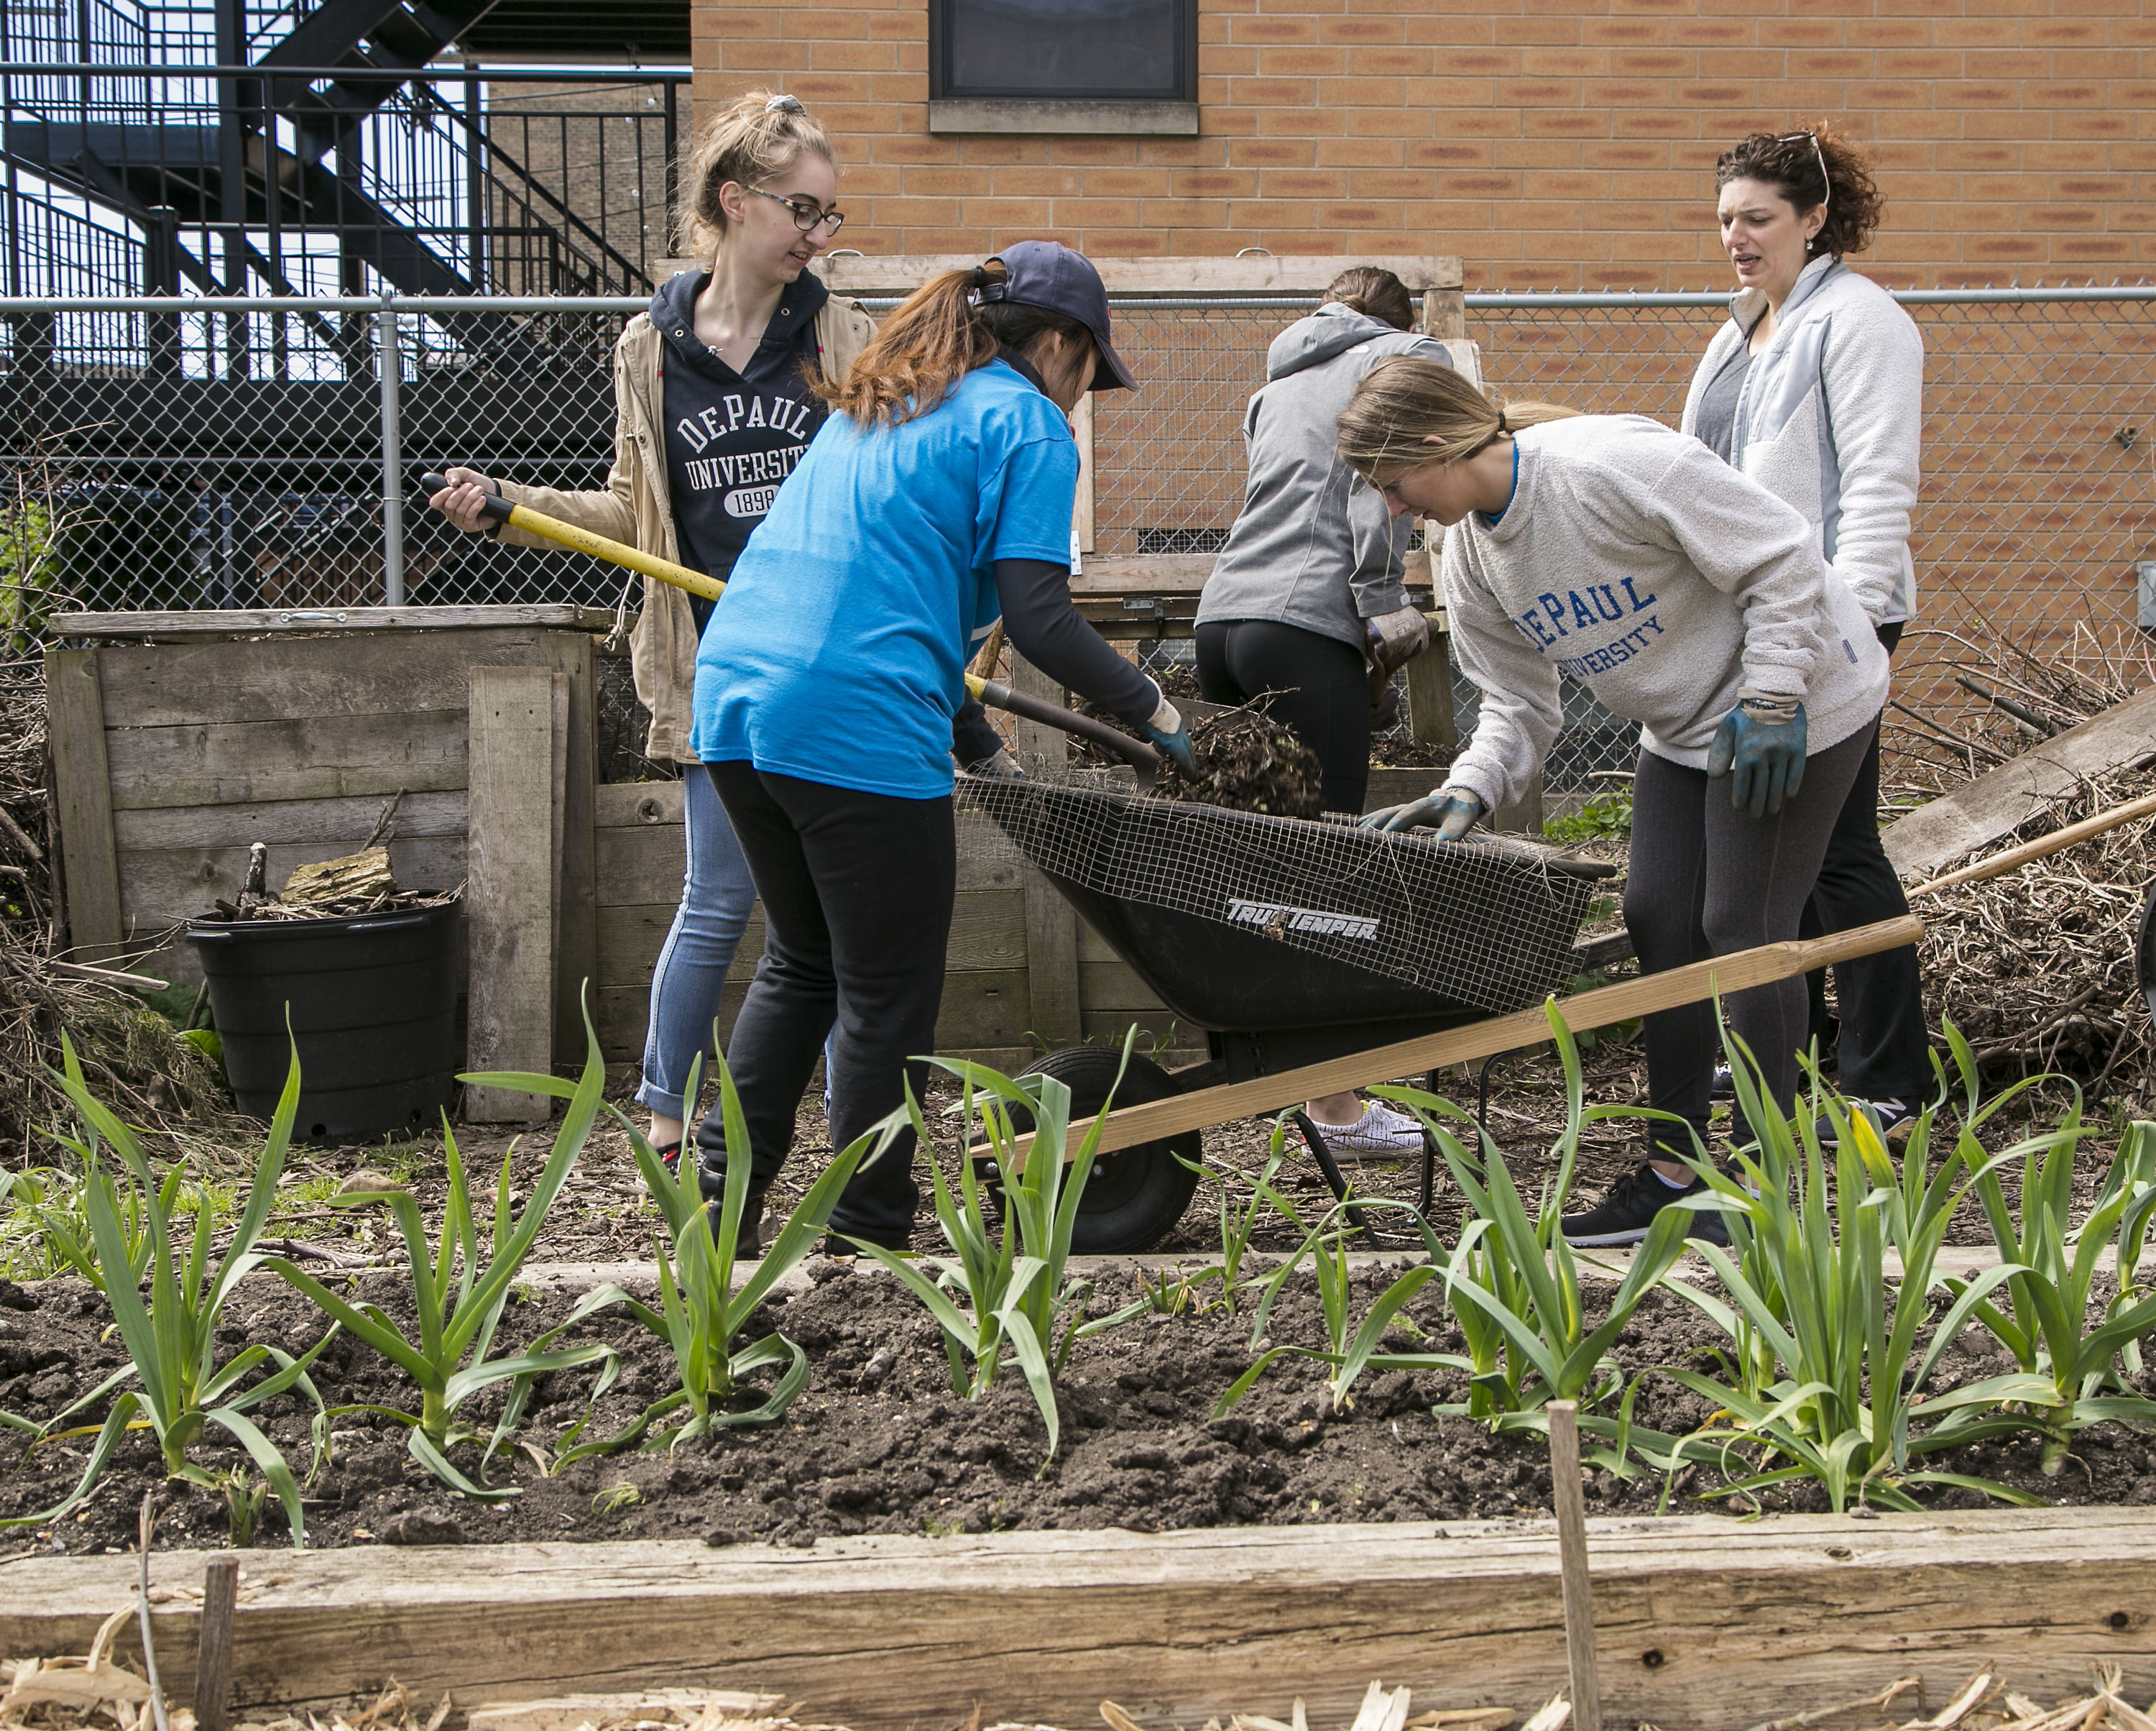 DePaul students participating in Vincentian Service Day